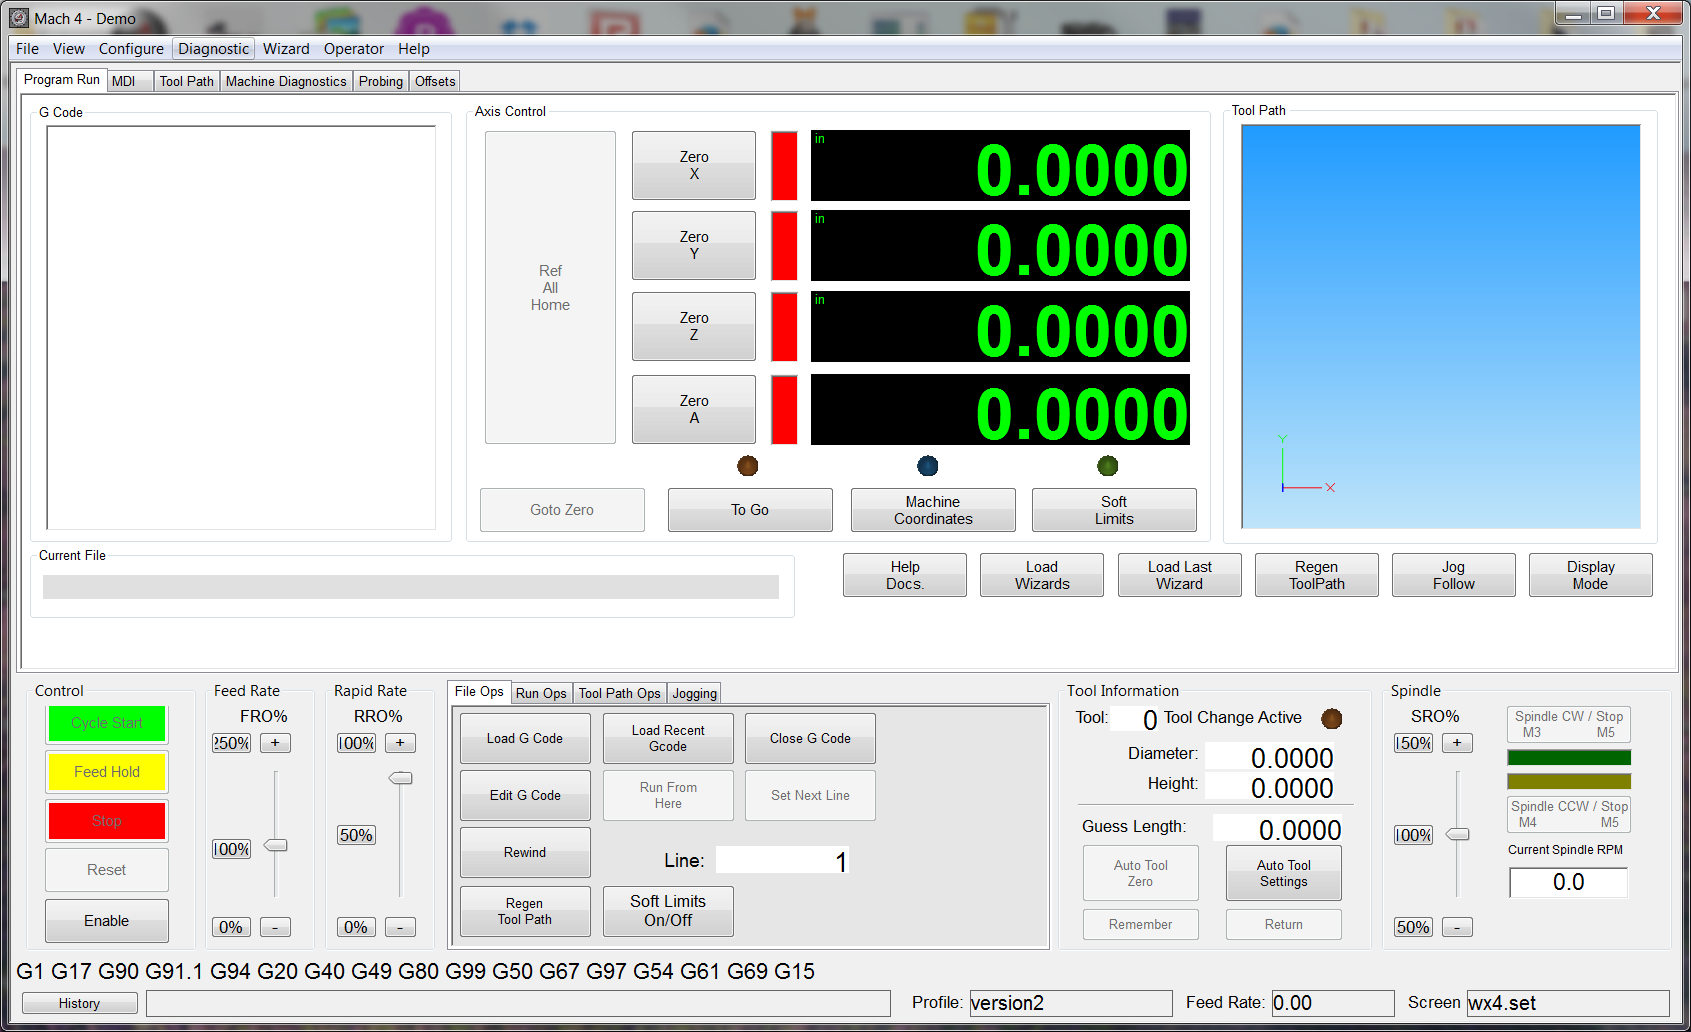 Mach3 cnc control software for windows 32 bit systems - Main Screen